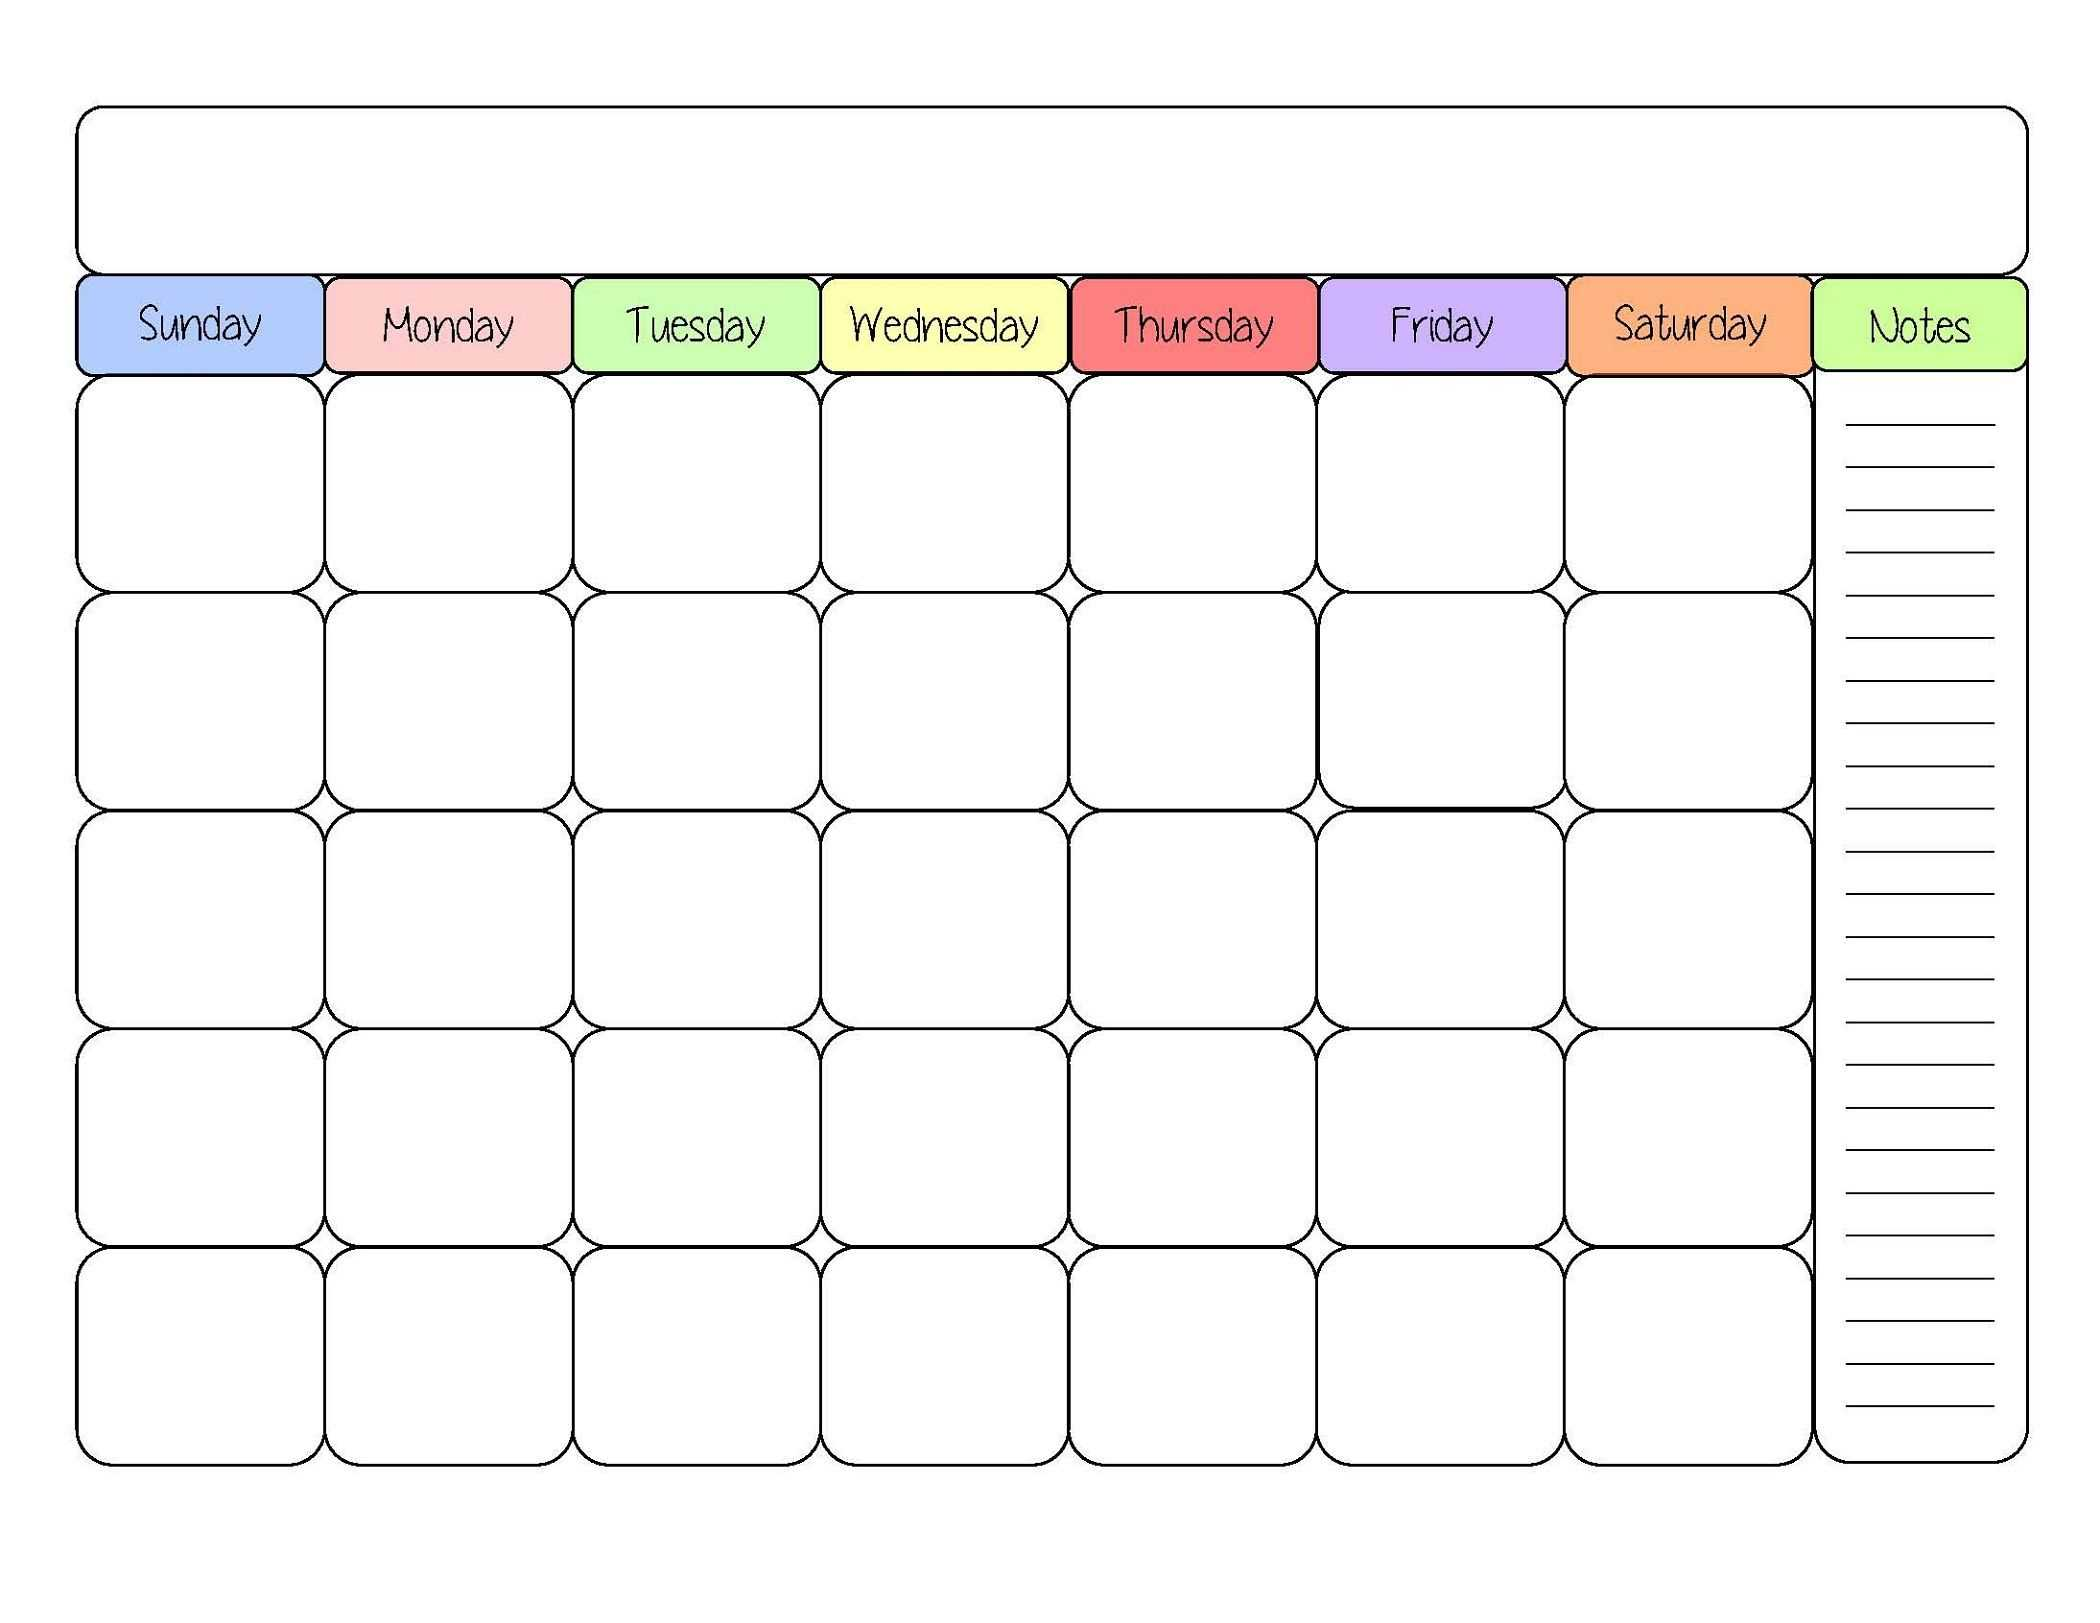 Sample Calendars To Print | Blank Monthly Calendar Template in Blank Activity Calendar Template